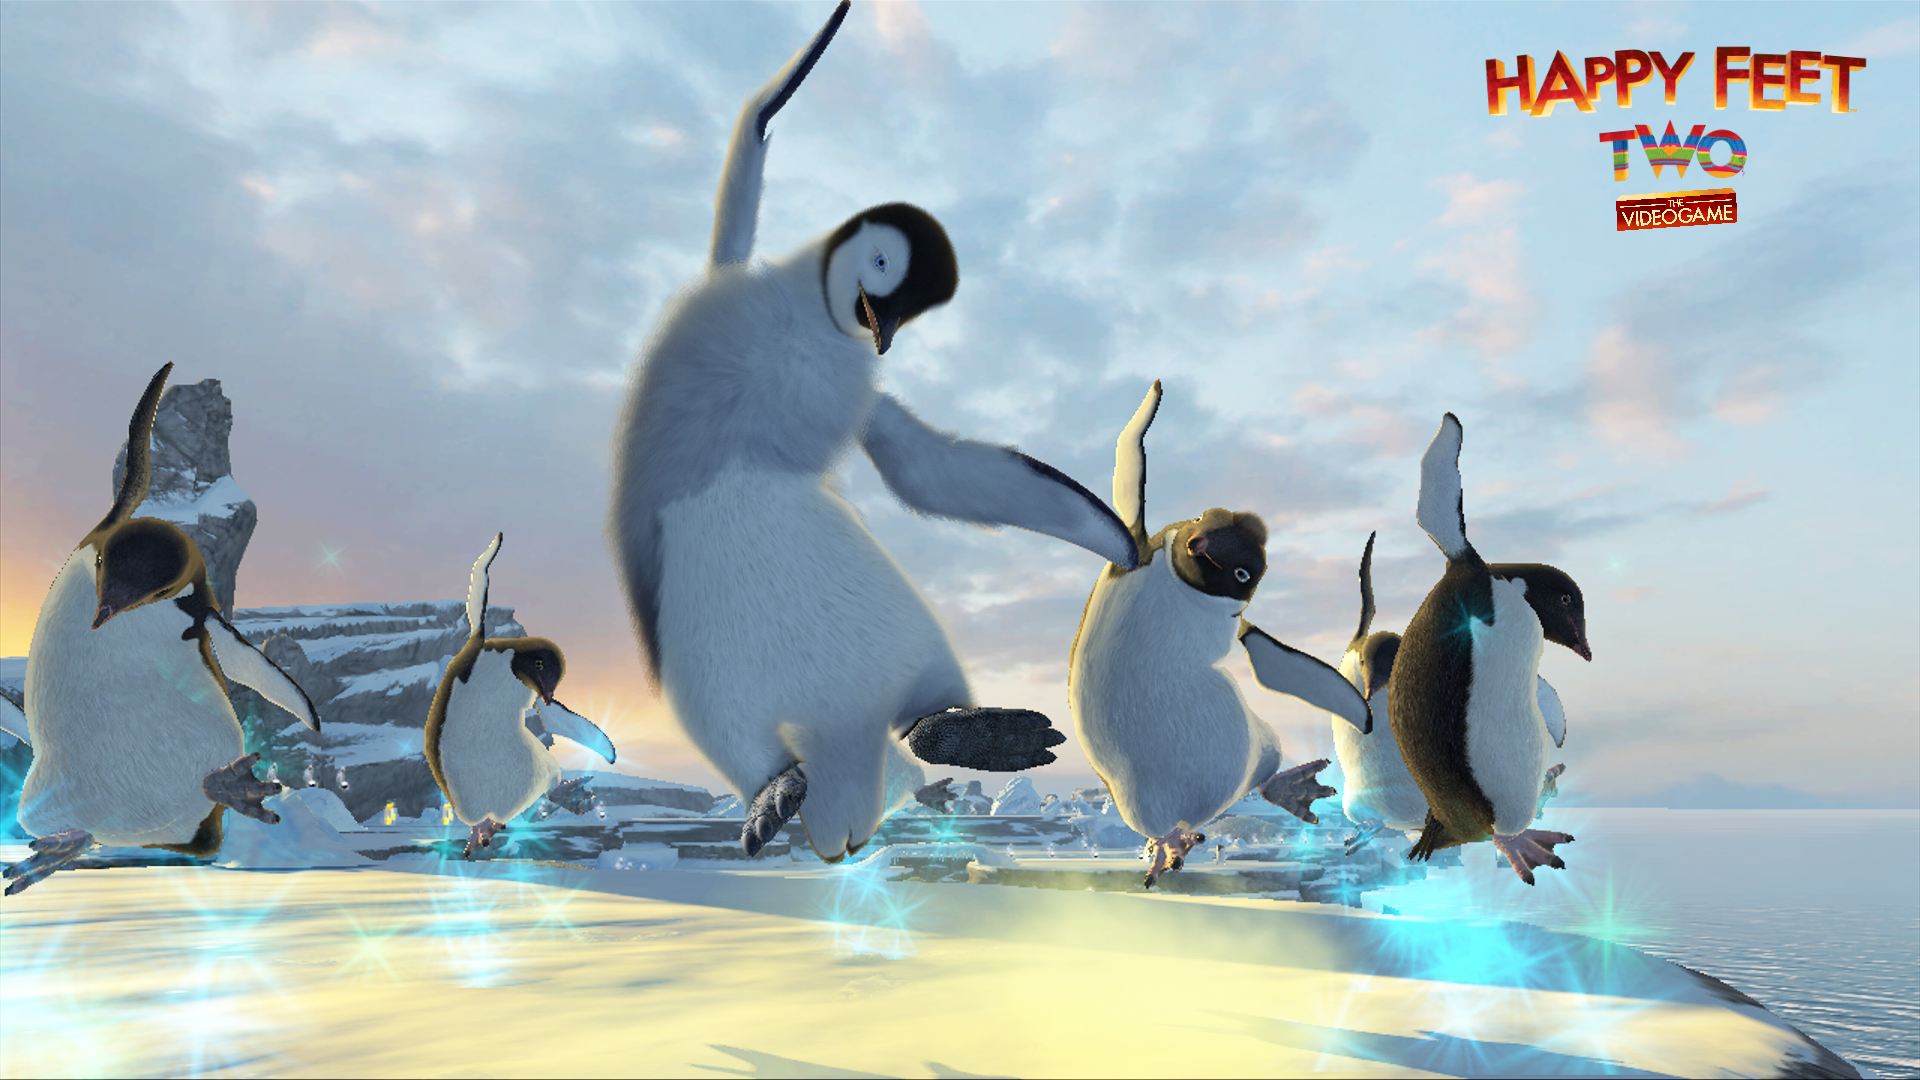 image - happy feet two the videogame 8 | happy feet wiki